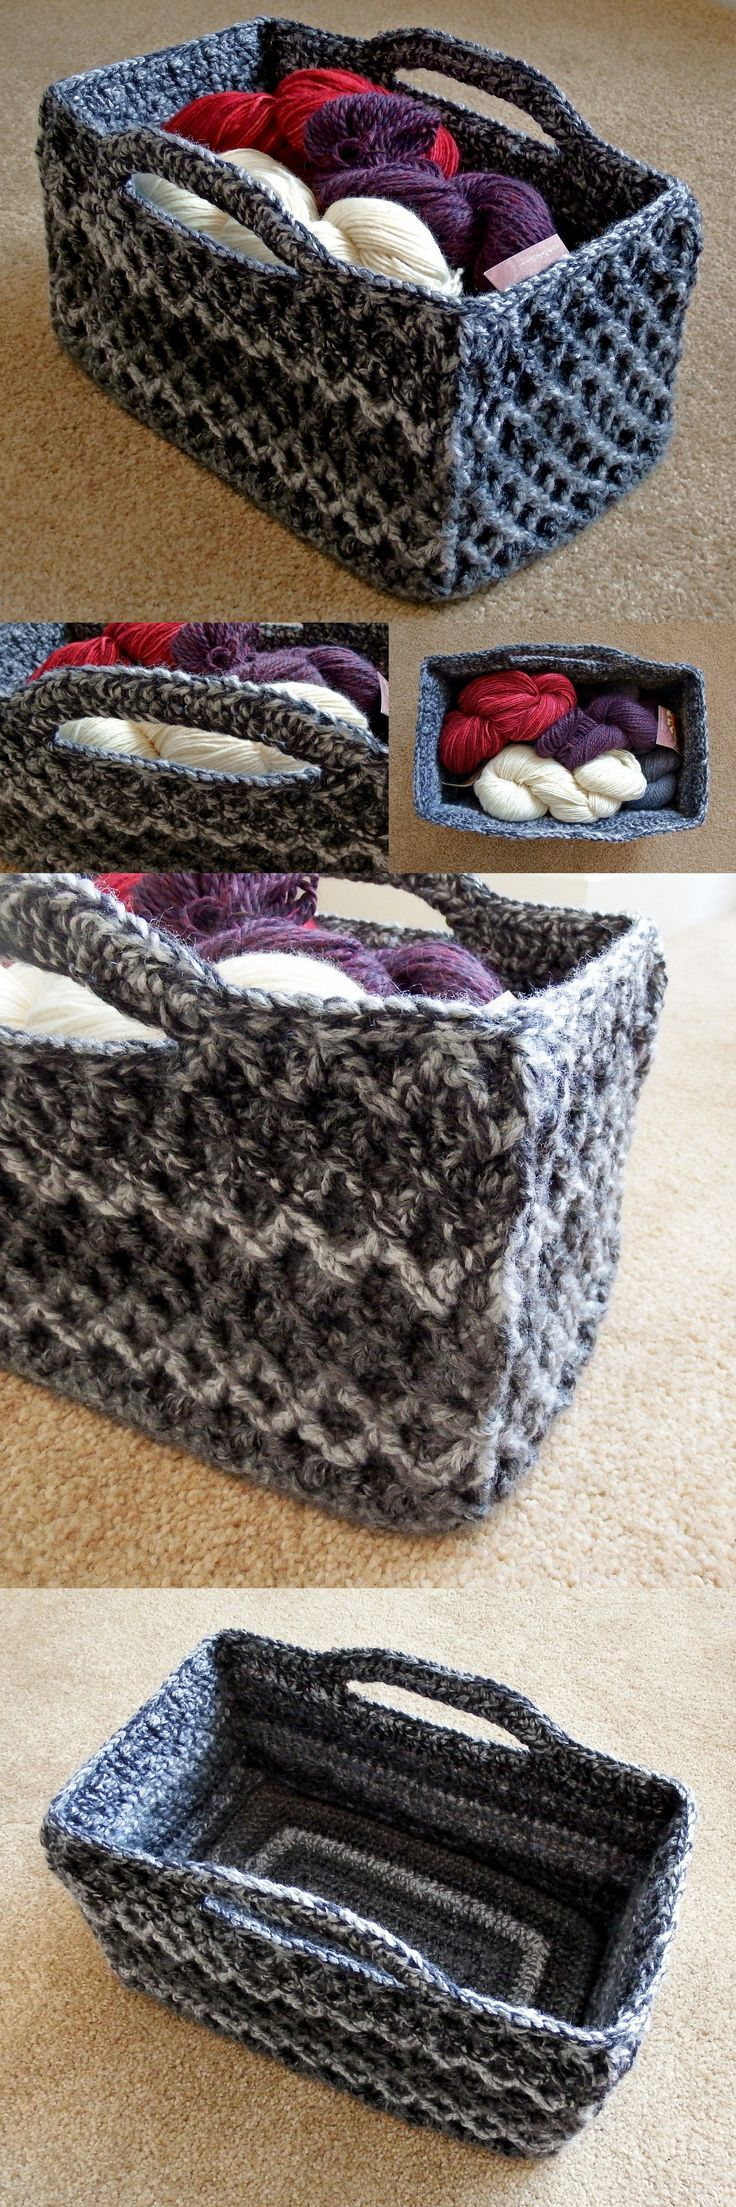 63 best Crochet Living images on Pinterest | Stricken und häkeln ...